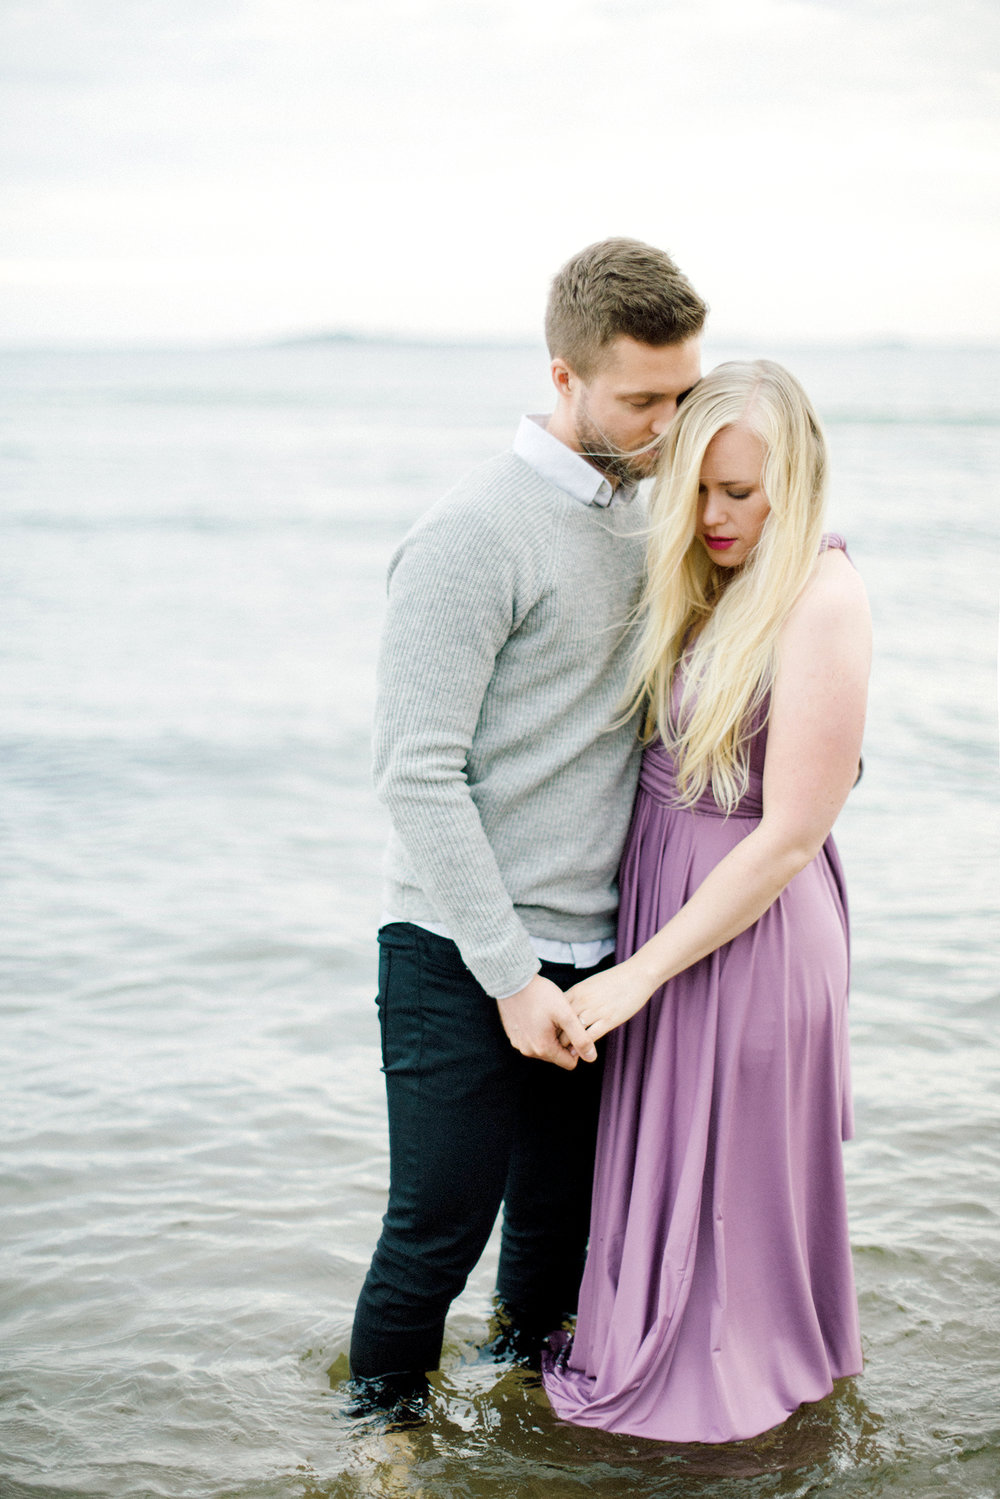 Sari & Mikko - Beach Engagement Couple Shoot in Hanko kihlakuvaus parikuvaus - Susanna Nordvall - Hey Look (21).jpg